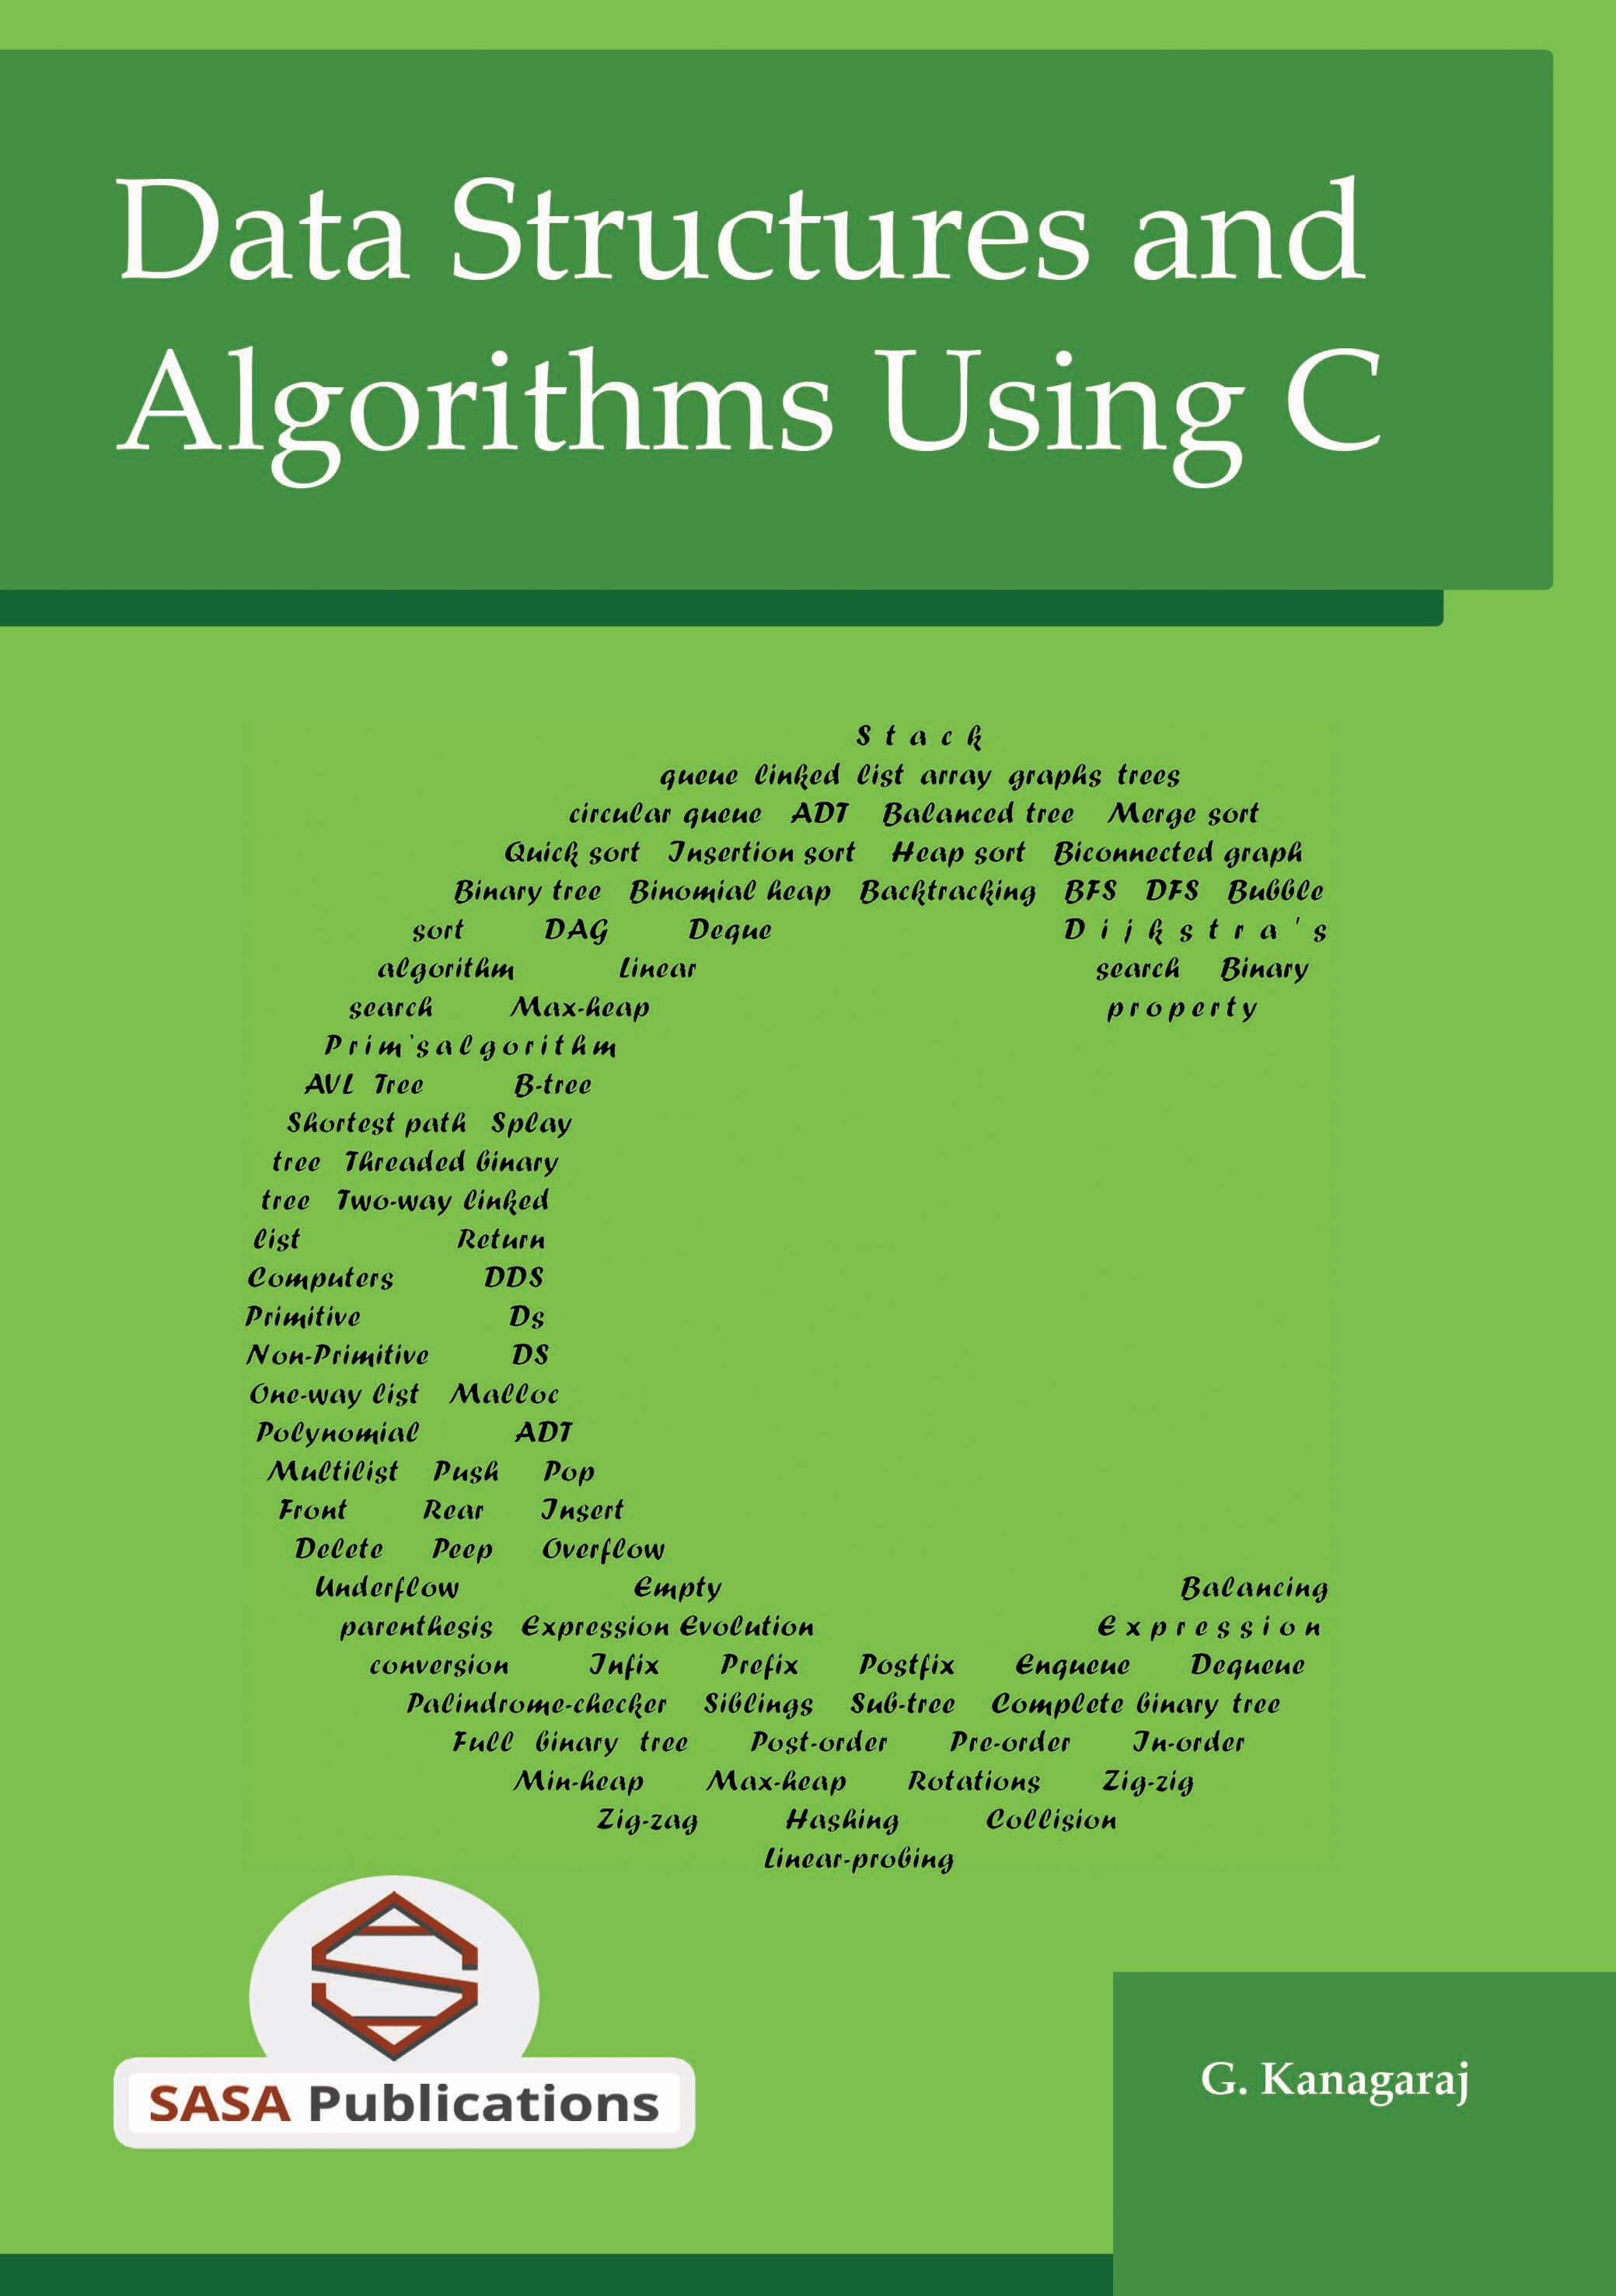 Data Structure and Algorithms Using C